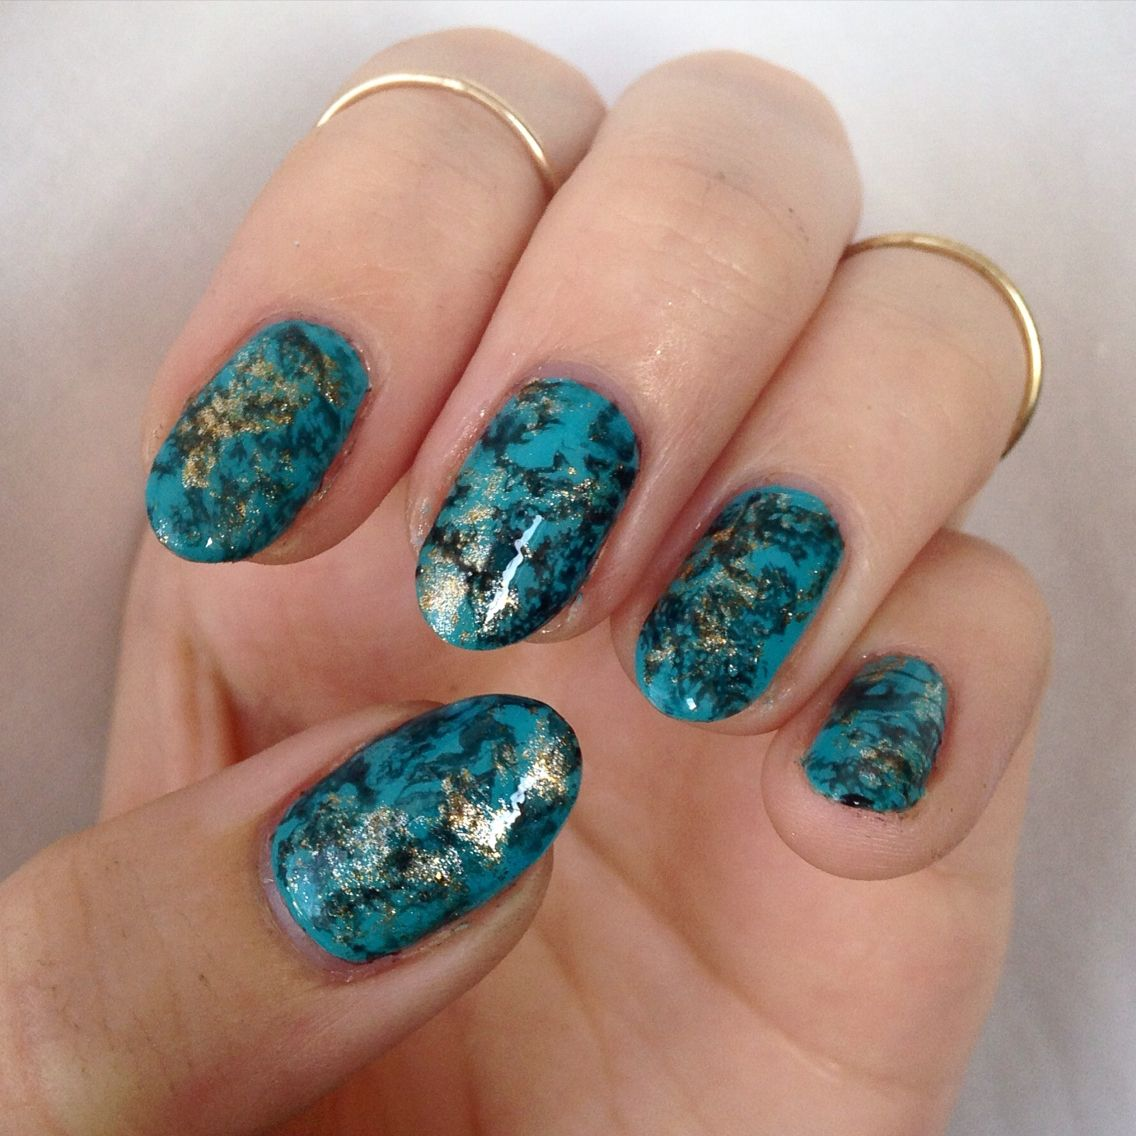 Nail Polish Looks Cracked | Hession Hairdressing